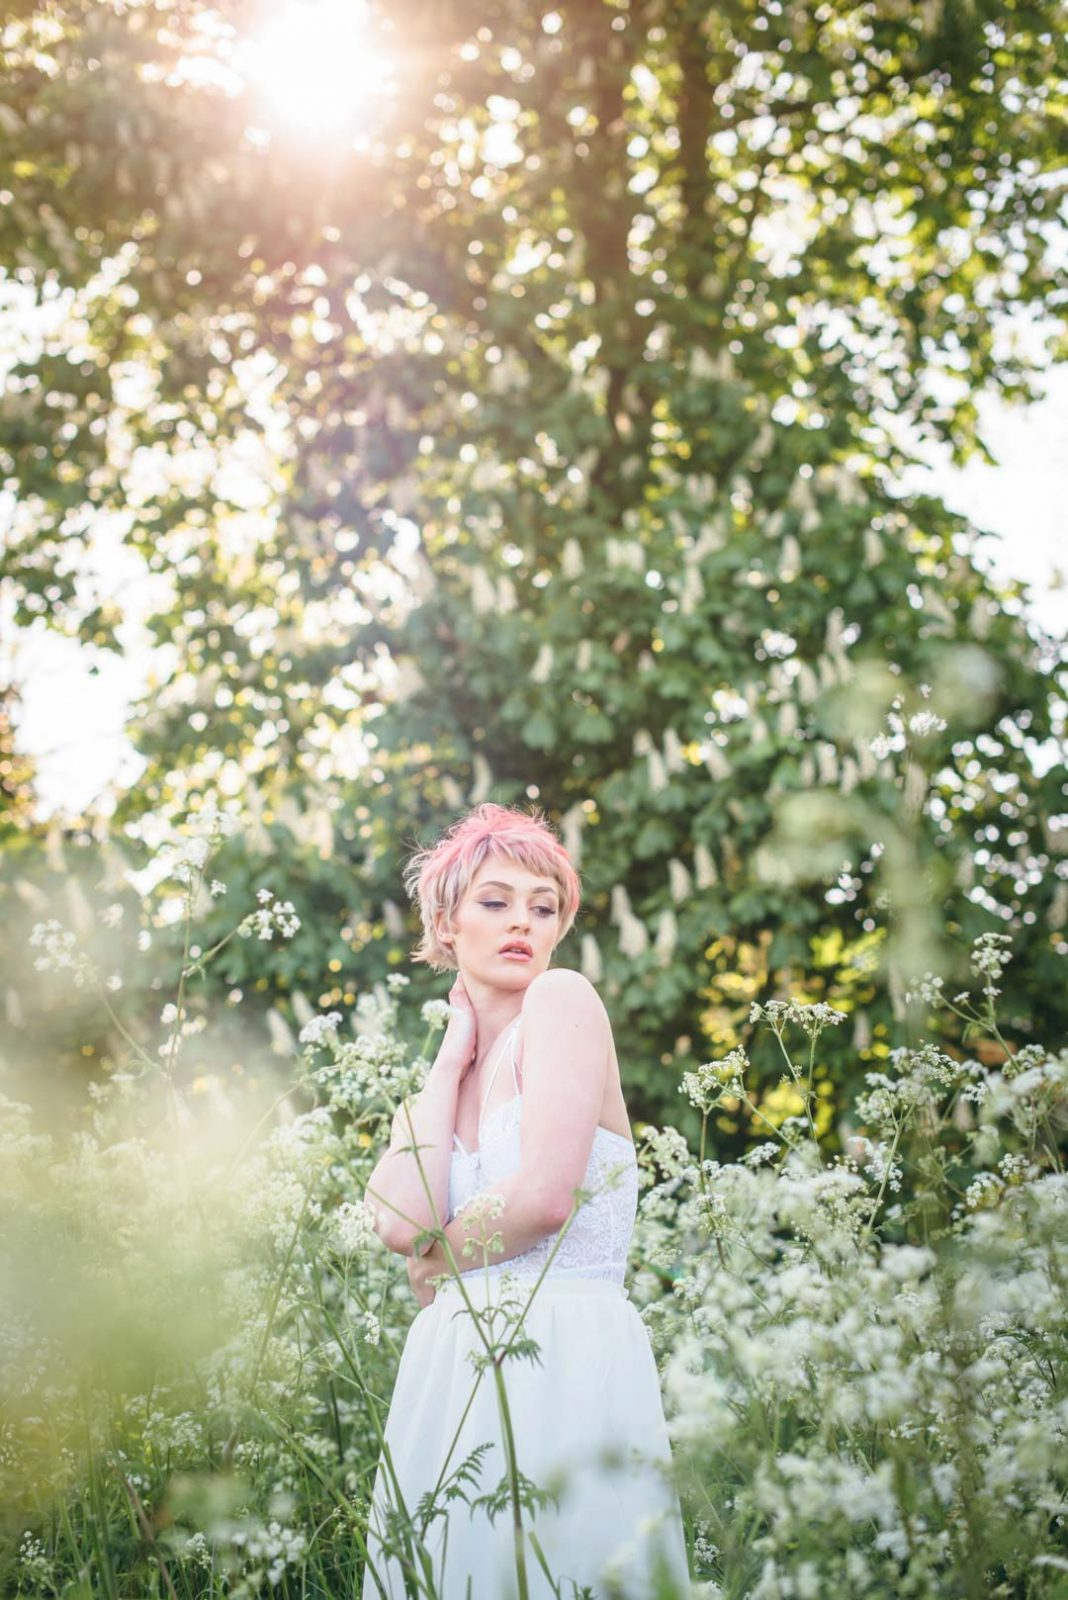 BethMoseleyPhotography_WhiteonWhite-162FINAL1080px wide-69